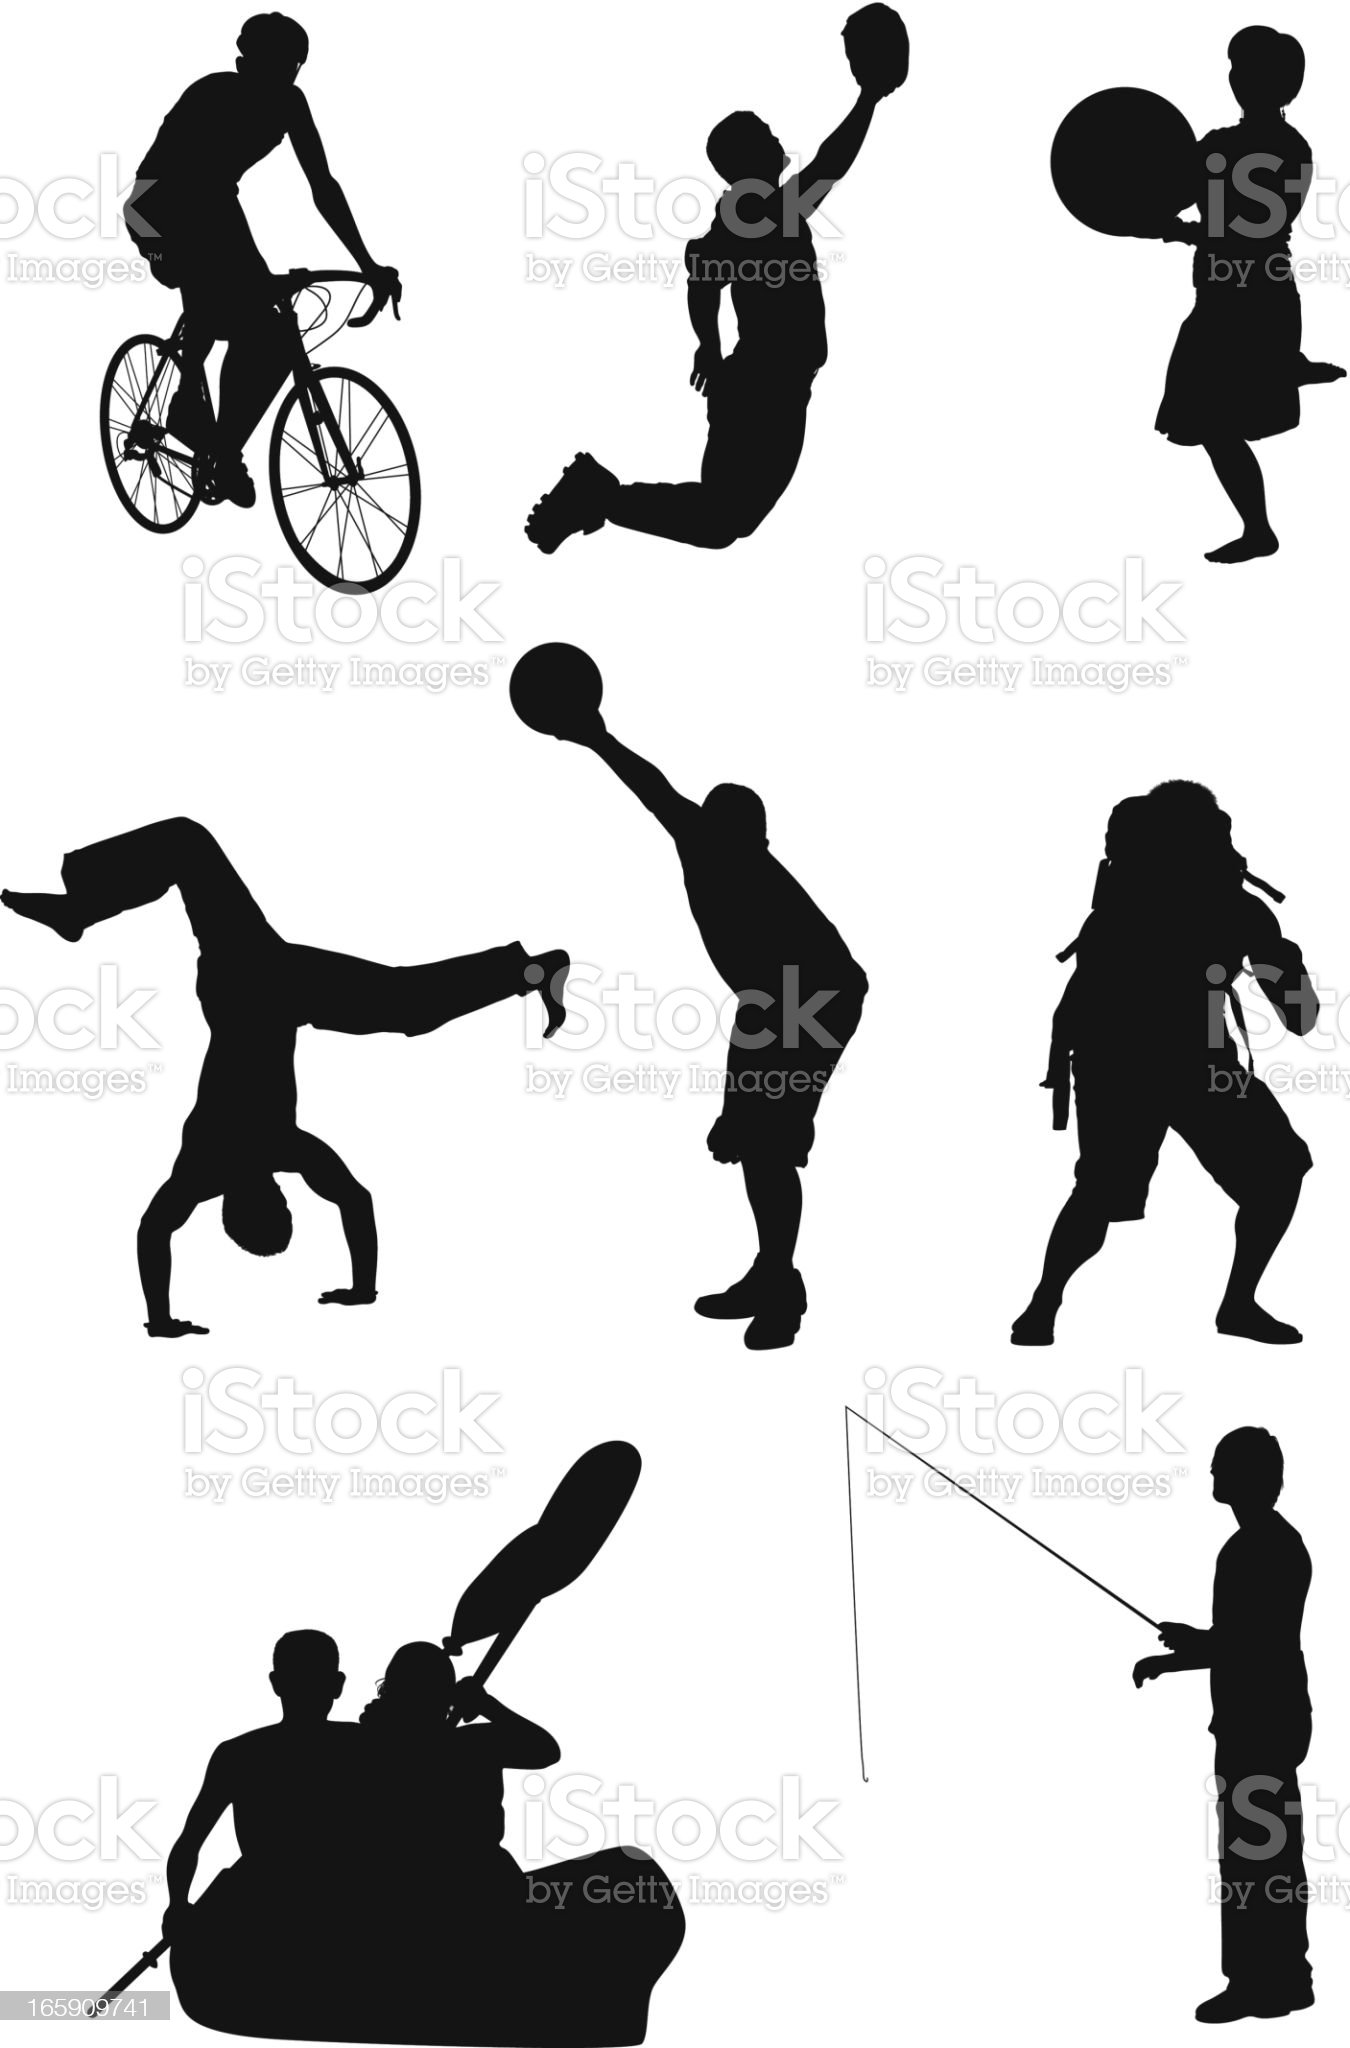 Sports collection royalty-free stock vector art